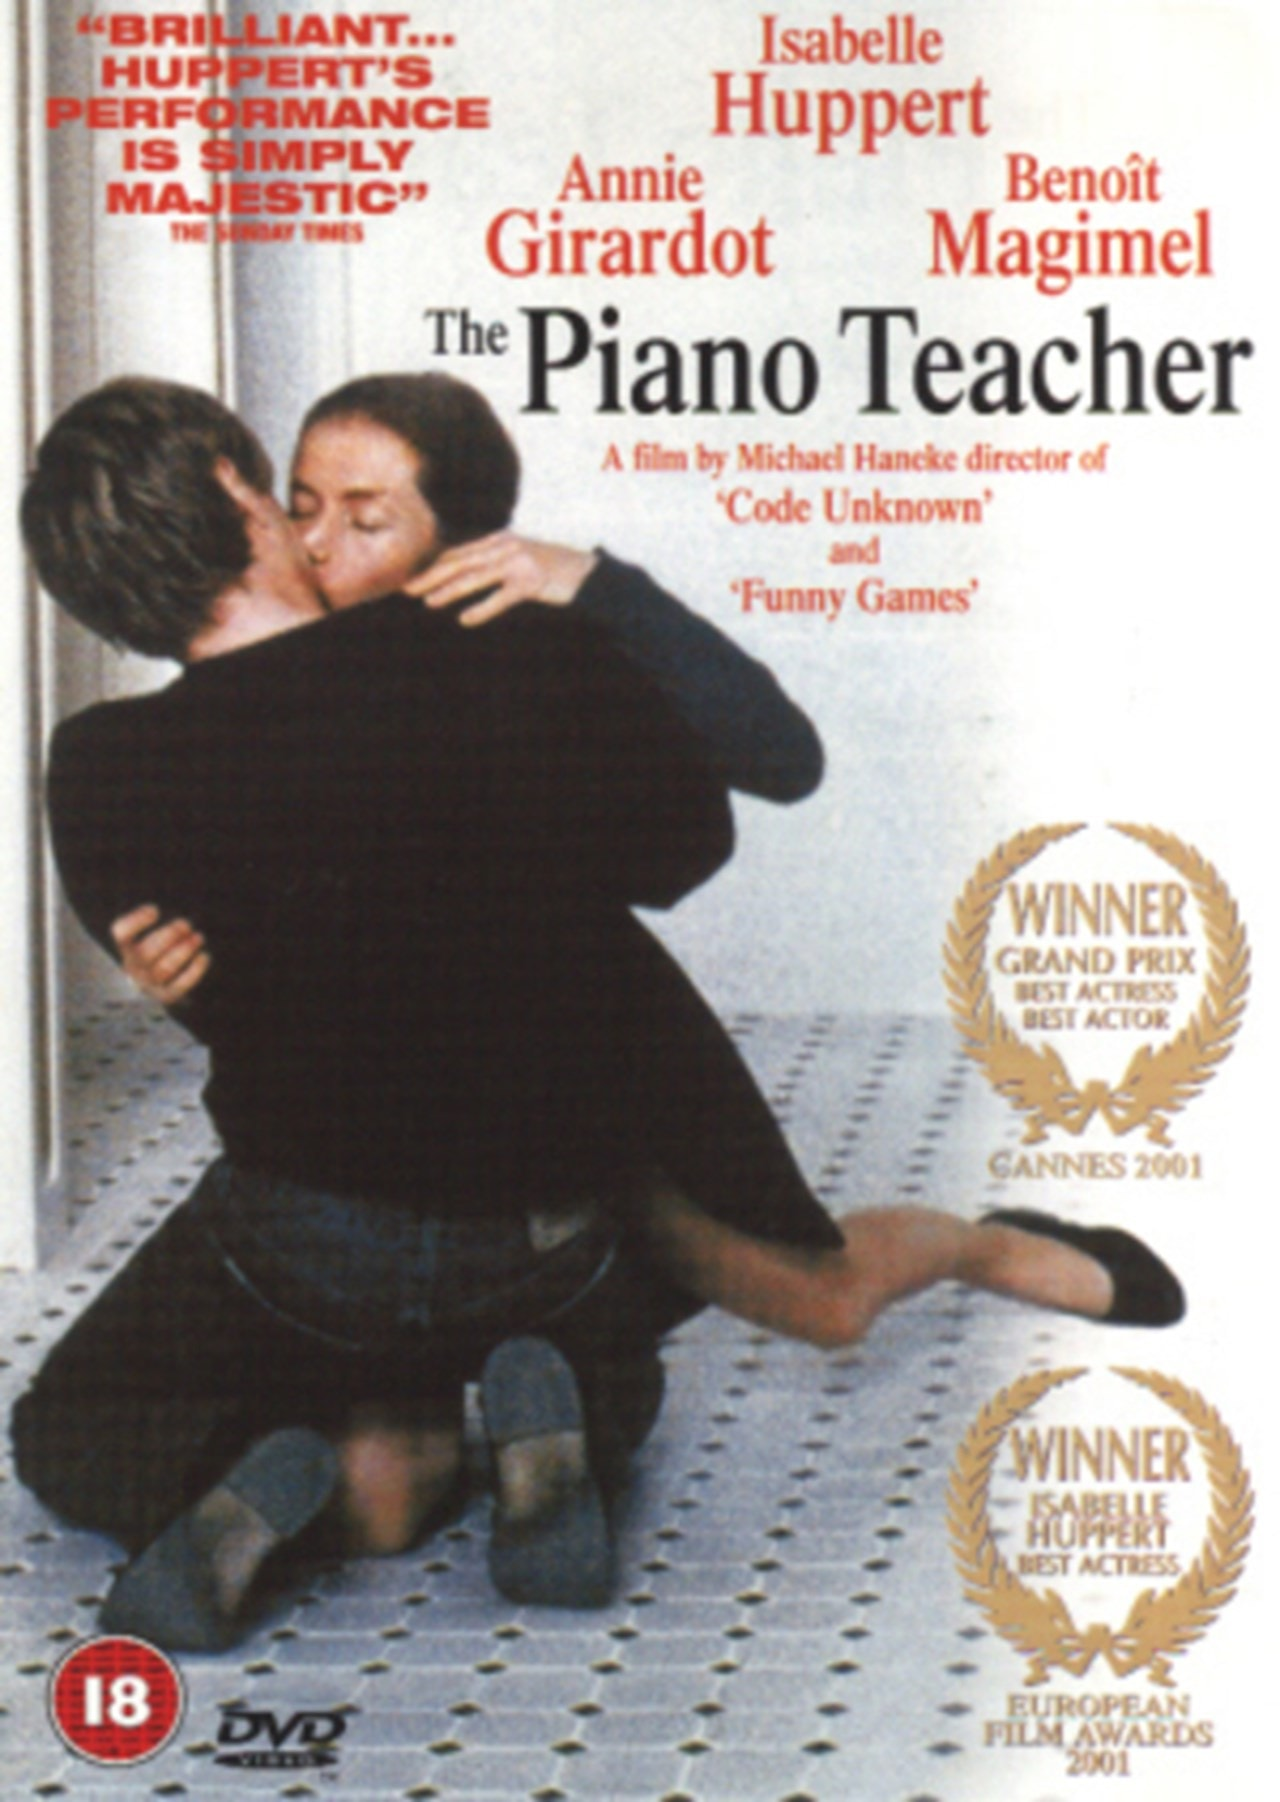 The Piano Teacher - 1